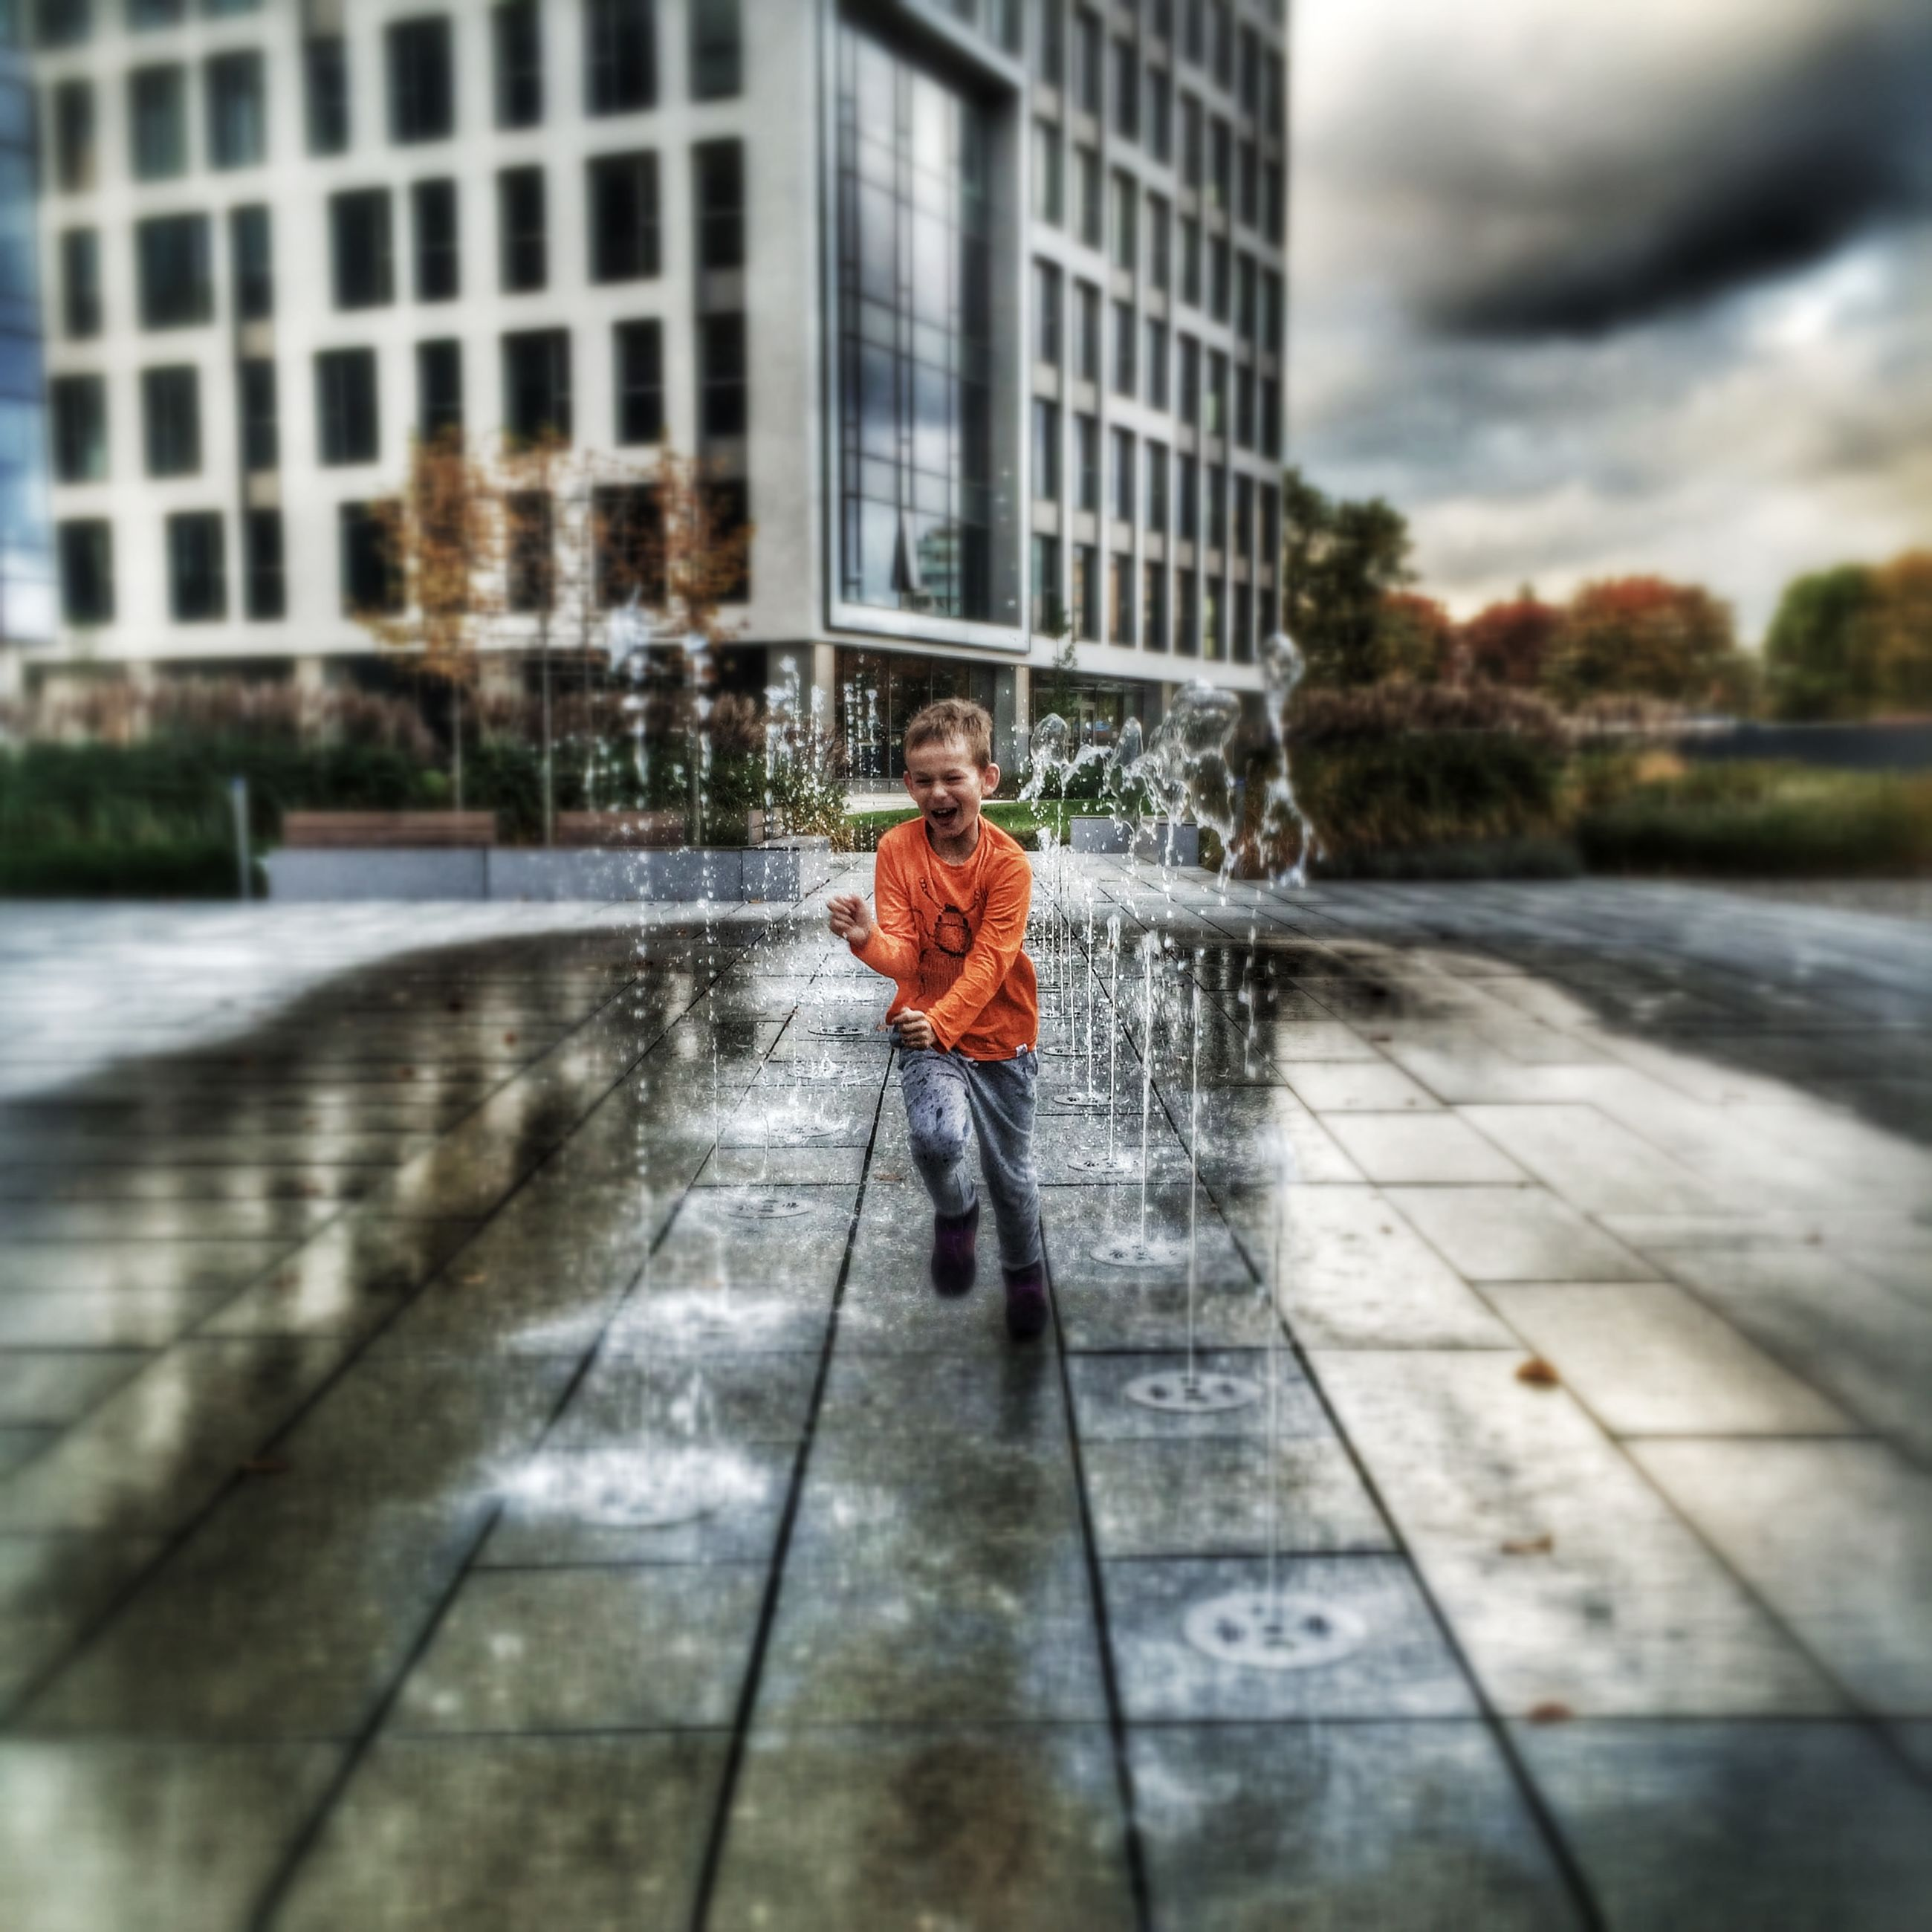 full length, lifestyles, building exterior, rear view, architecture, built structure, leisure activity, weather, focus on foreground, casual clothing, day, season, walking, standing, water, rain, men, city